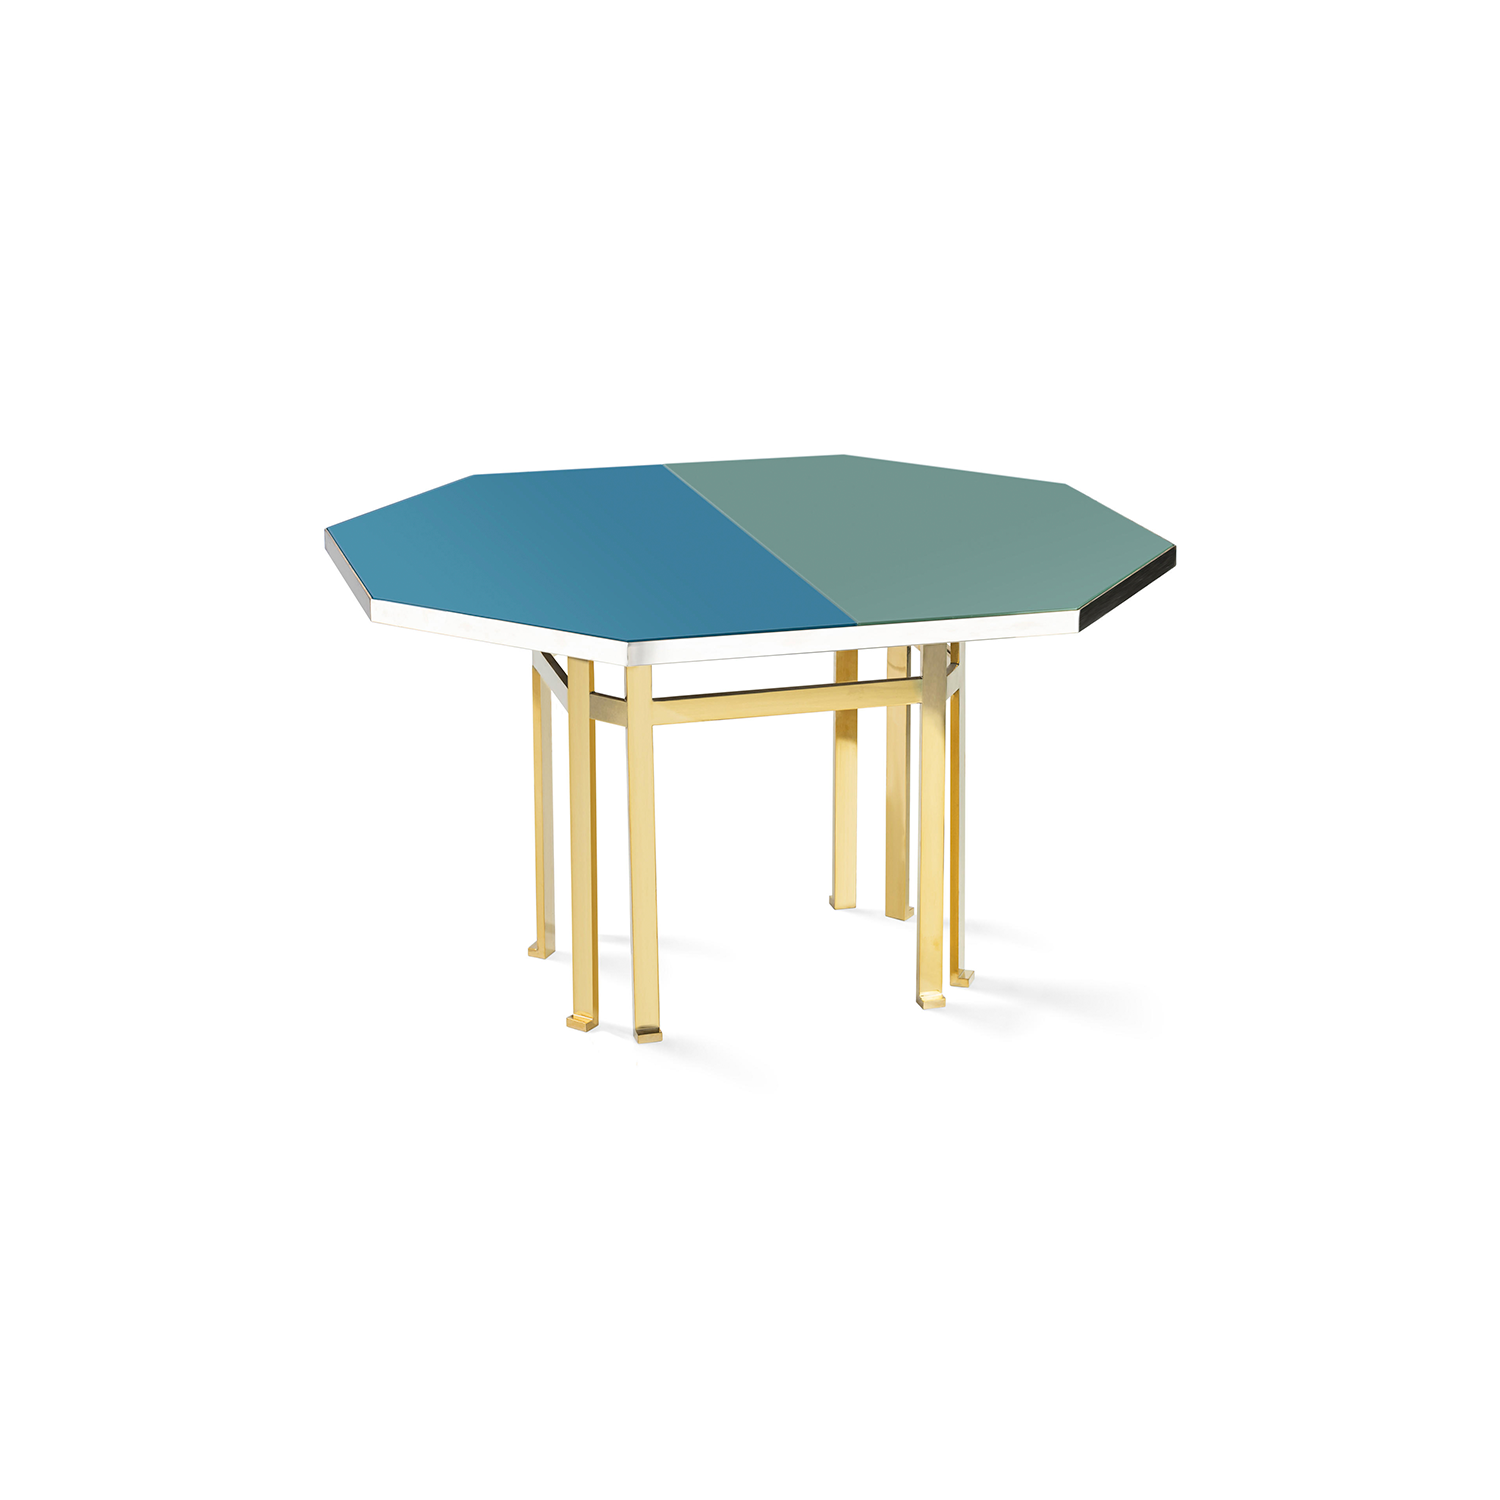 Holo 130 Table - Designed by Filippo Feroldi for Purho and Colleoni Arte, Holo 130 is characterized by small dimensions and by an octagonal brass structure surmounted by a sheet of glass back-coloured in two different shades which in turn rests on a base in black lacquered wood.  The volumes, the technical details, the study of colour and the craftsmanship with which it is made make Holo 130 a precious, unique complement, masterfully balanced between the history of design and contemporaneity, capable of giving personality to the environments in which it is inserted.  Colours can be customised, please enquire for more details. | Matter of Stuff